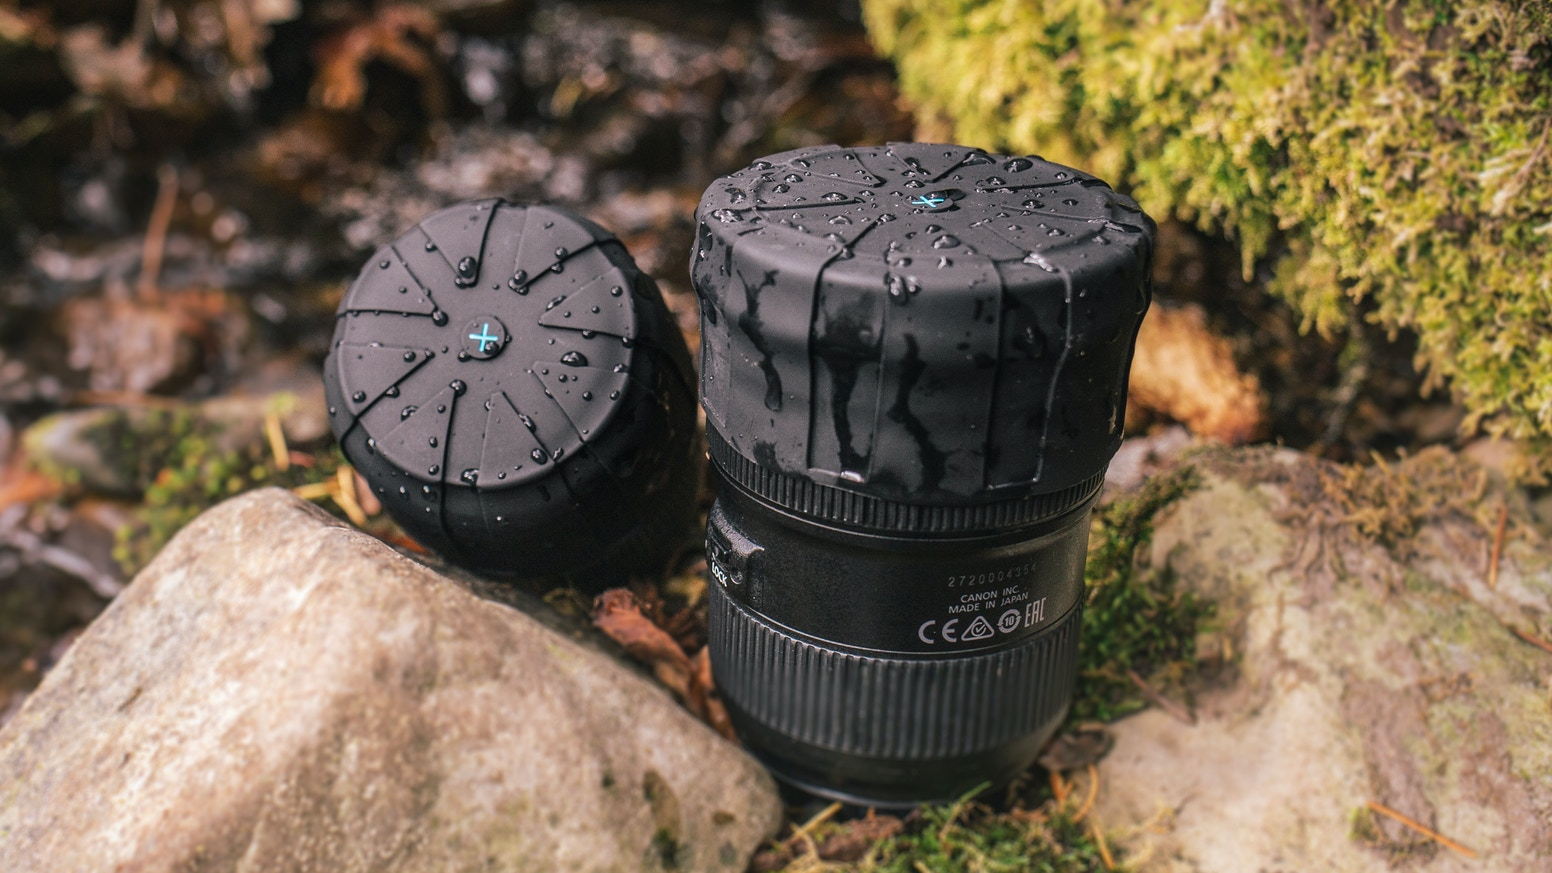 The last lens cap you'll ever need. Fits every Lens. Never falls off. Element Proof. Front/Rear Lens Cap. All with a Lifetime Warranty.